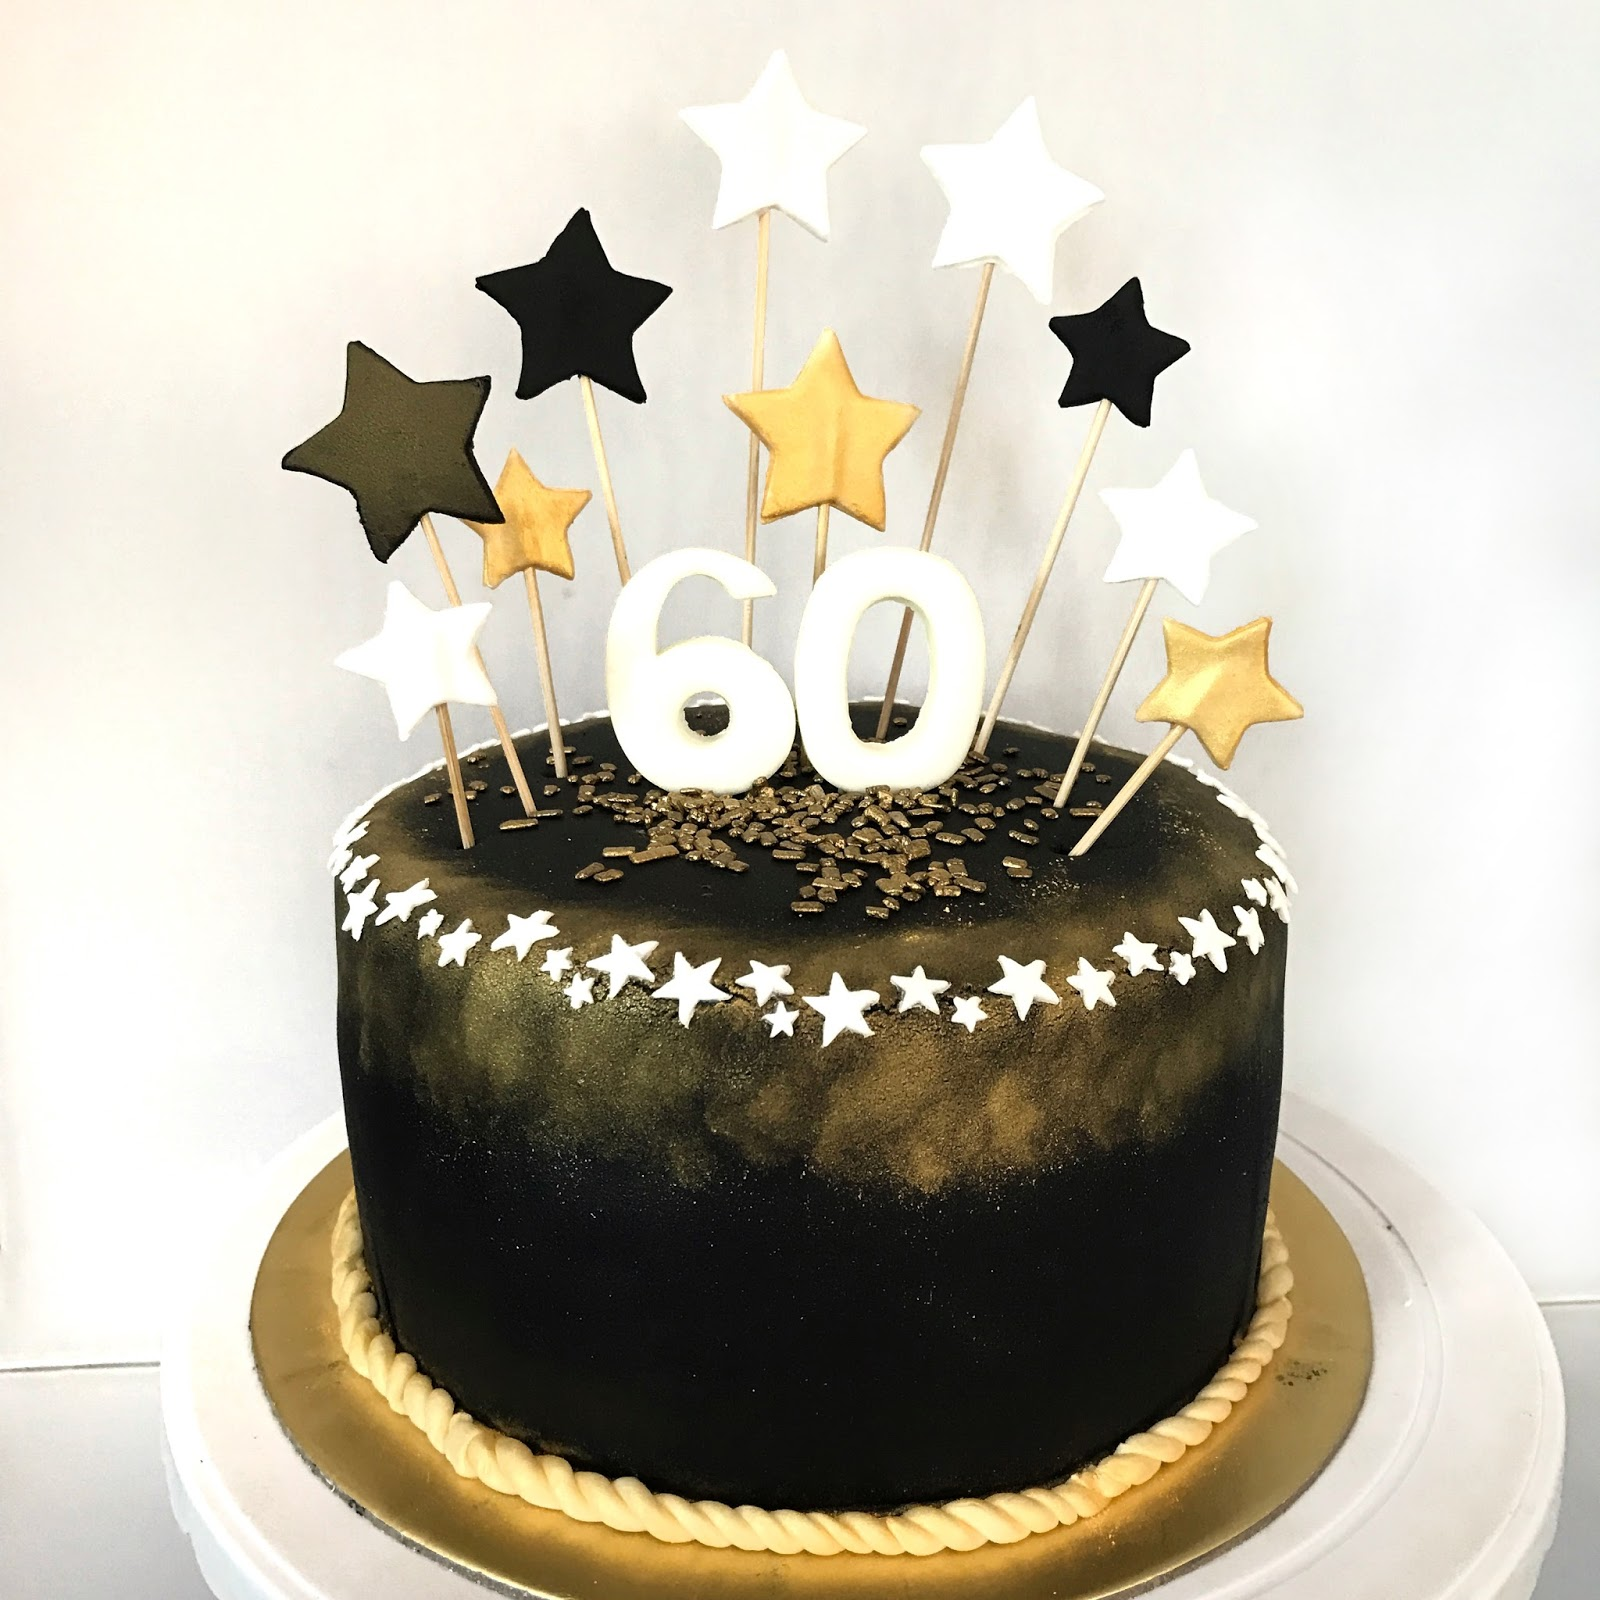 Sherbakes Black and Gold 60th Birthday Cake